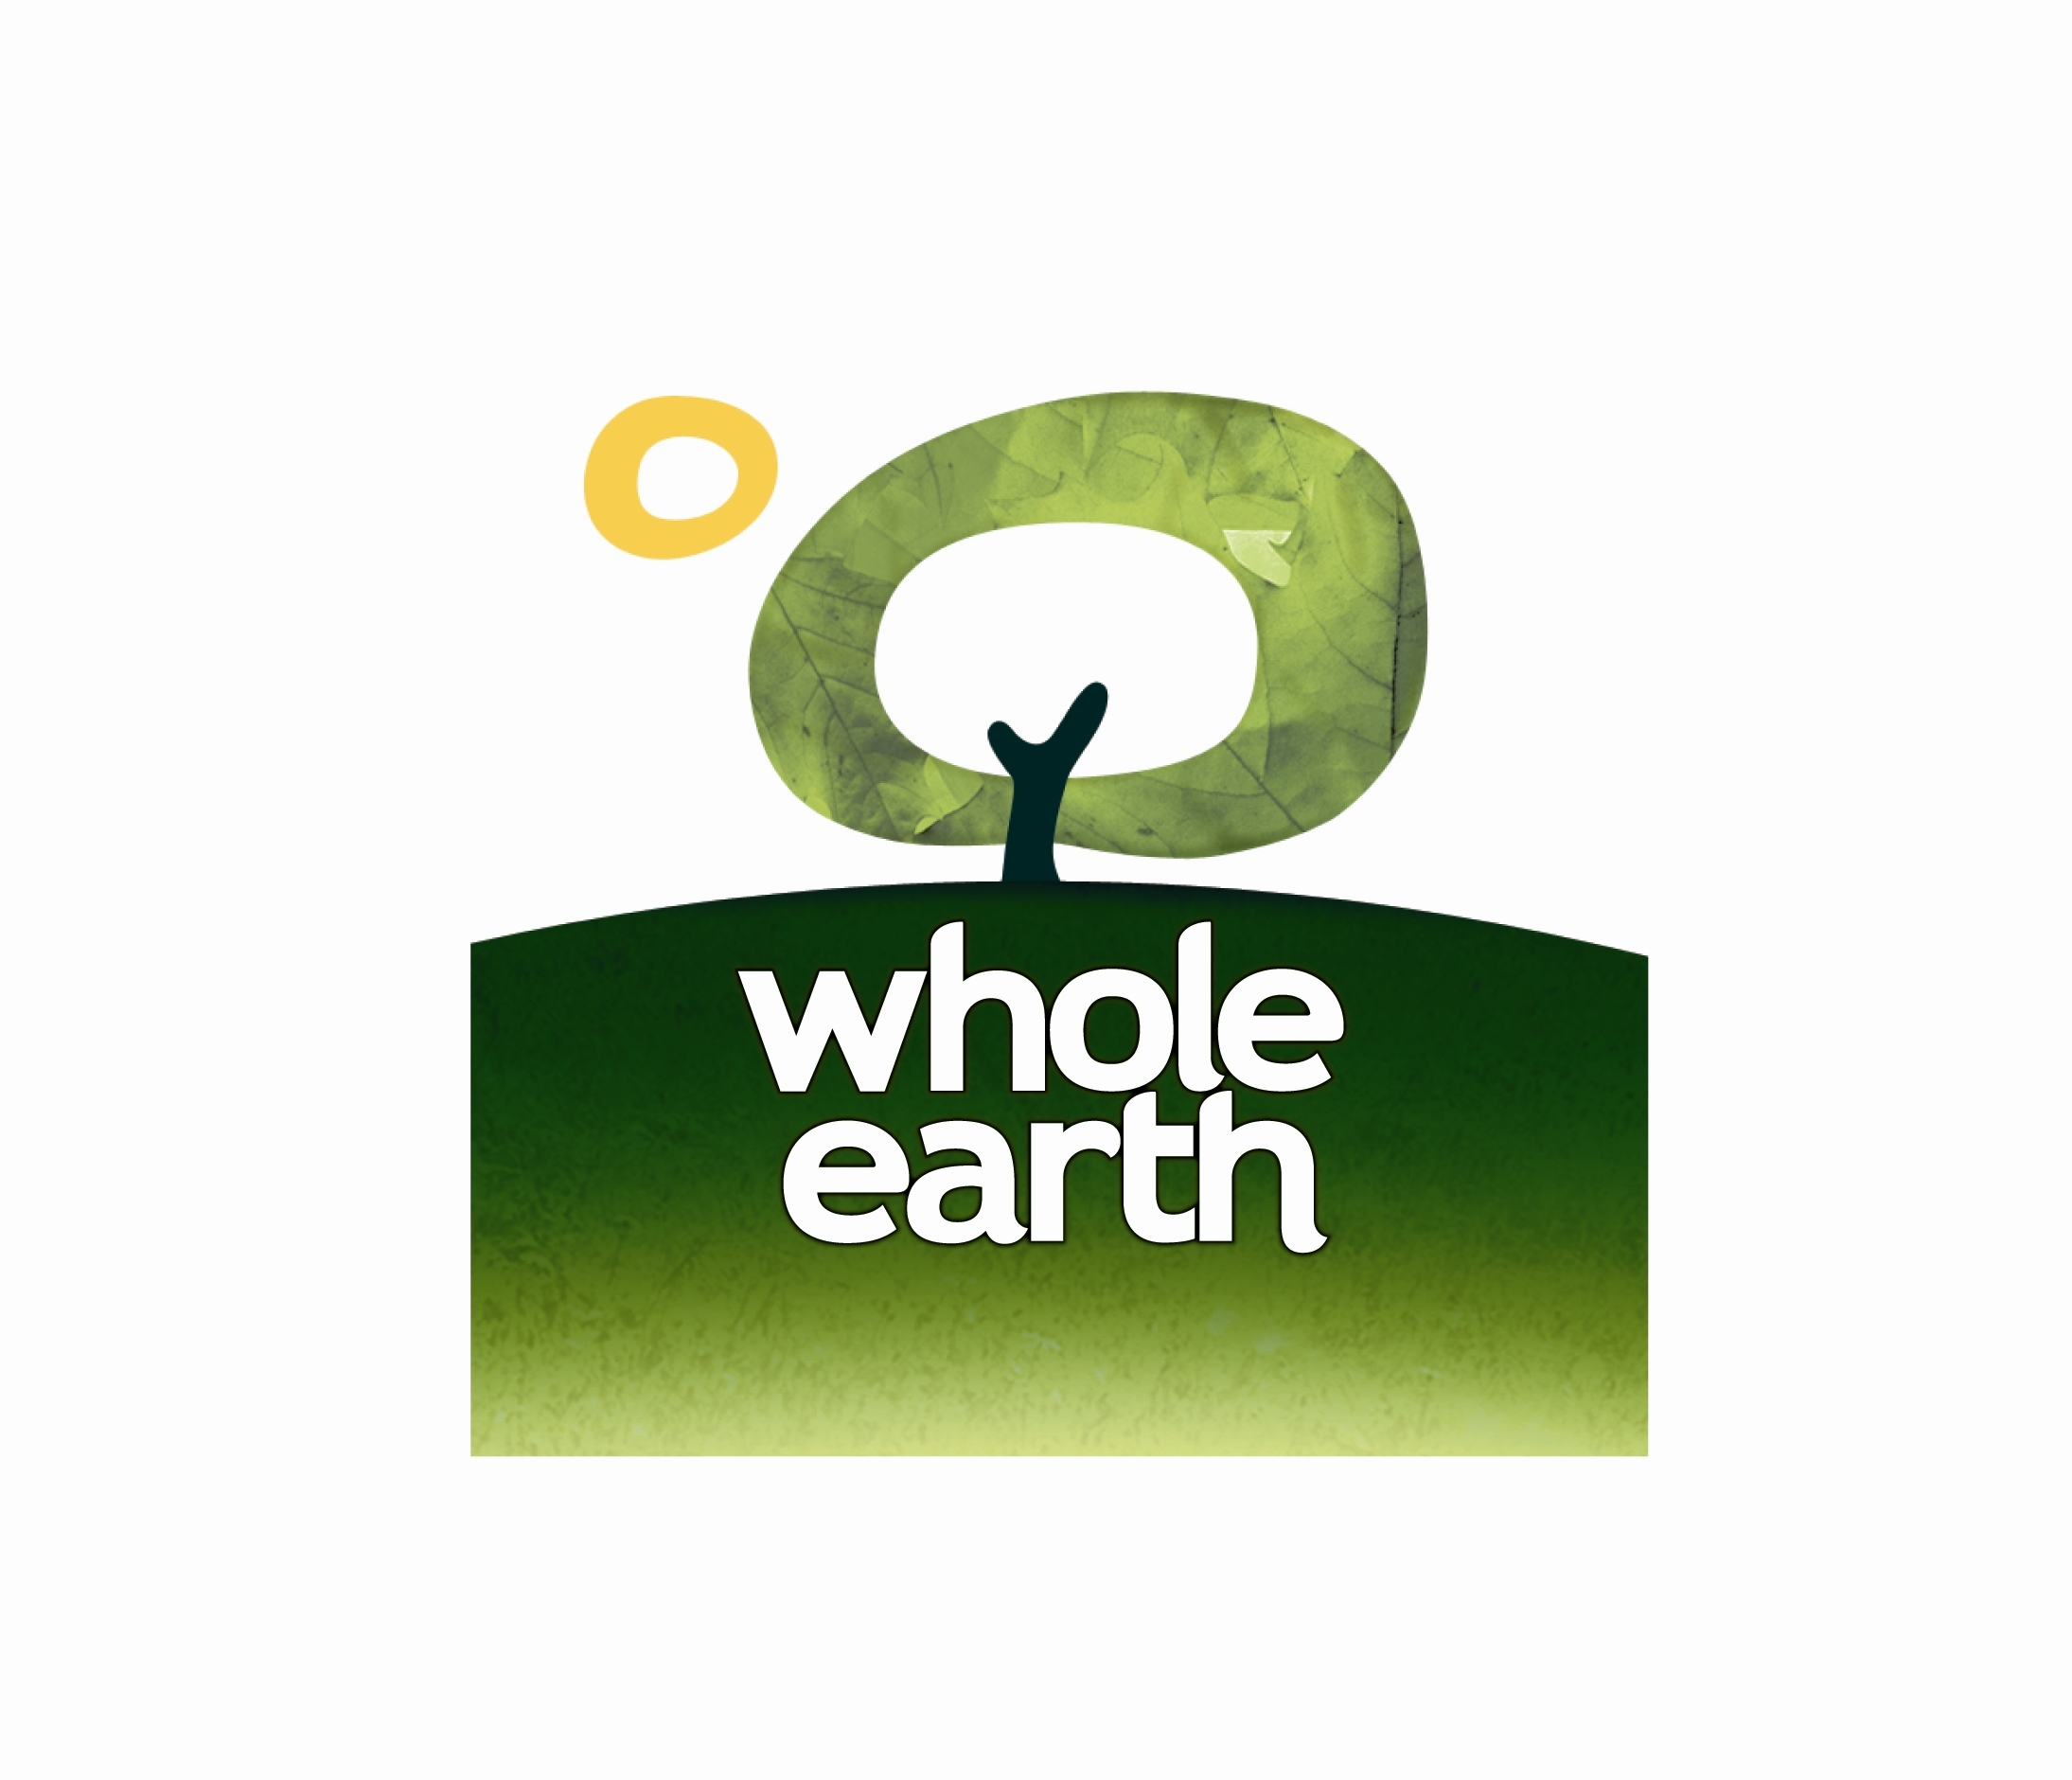 whole-earth-logo-21.jpg